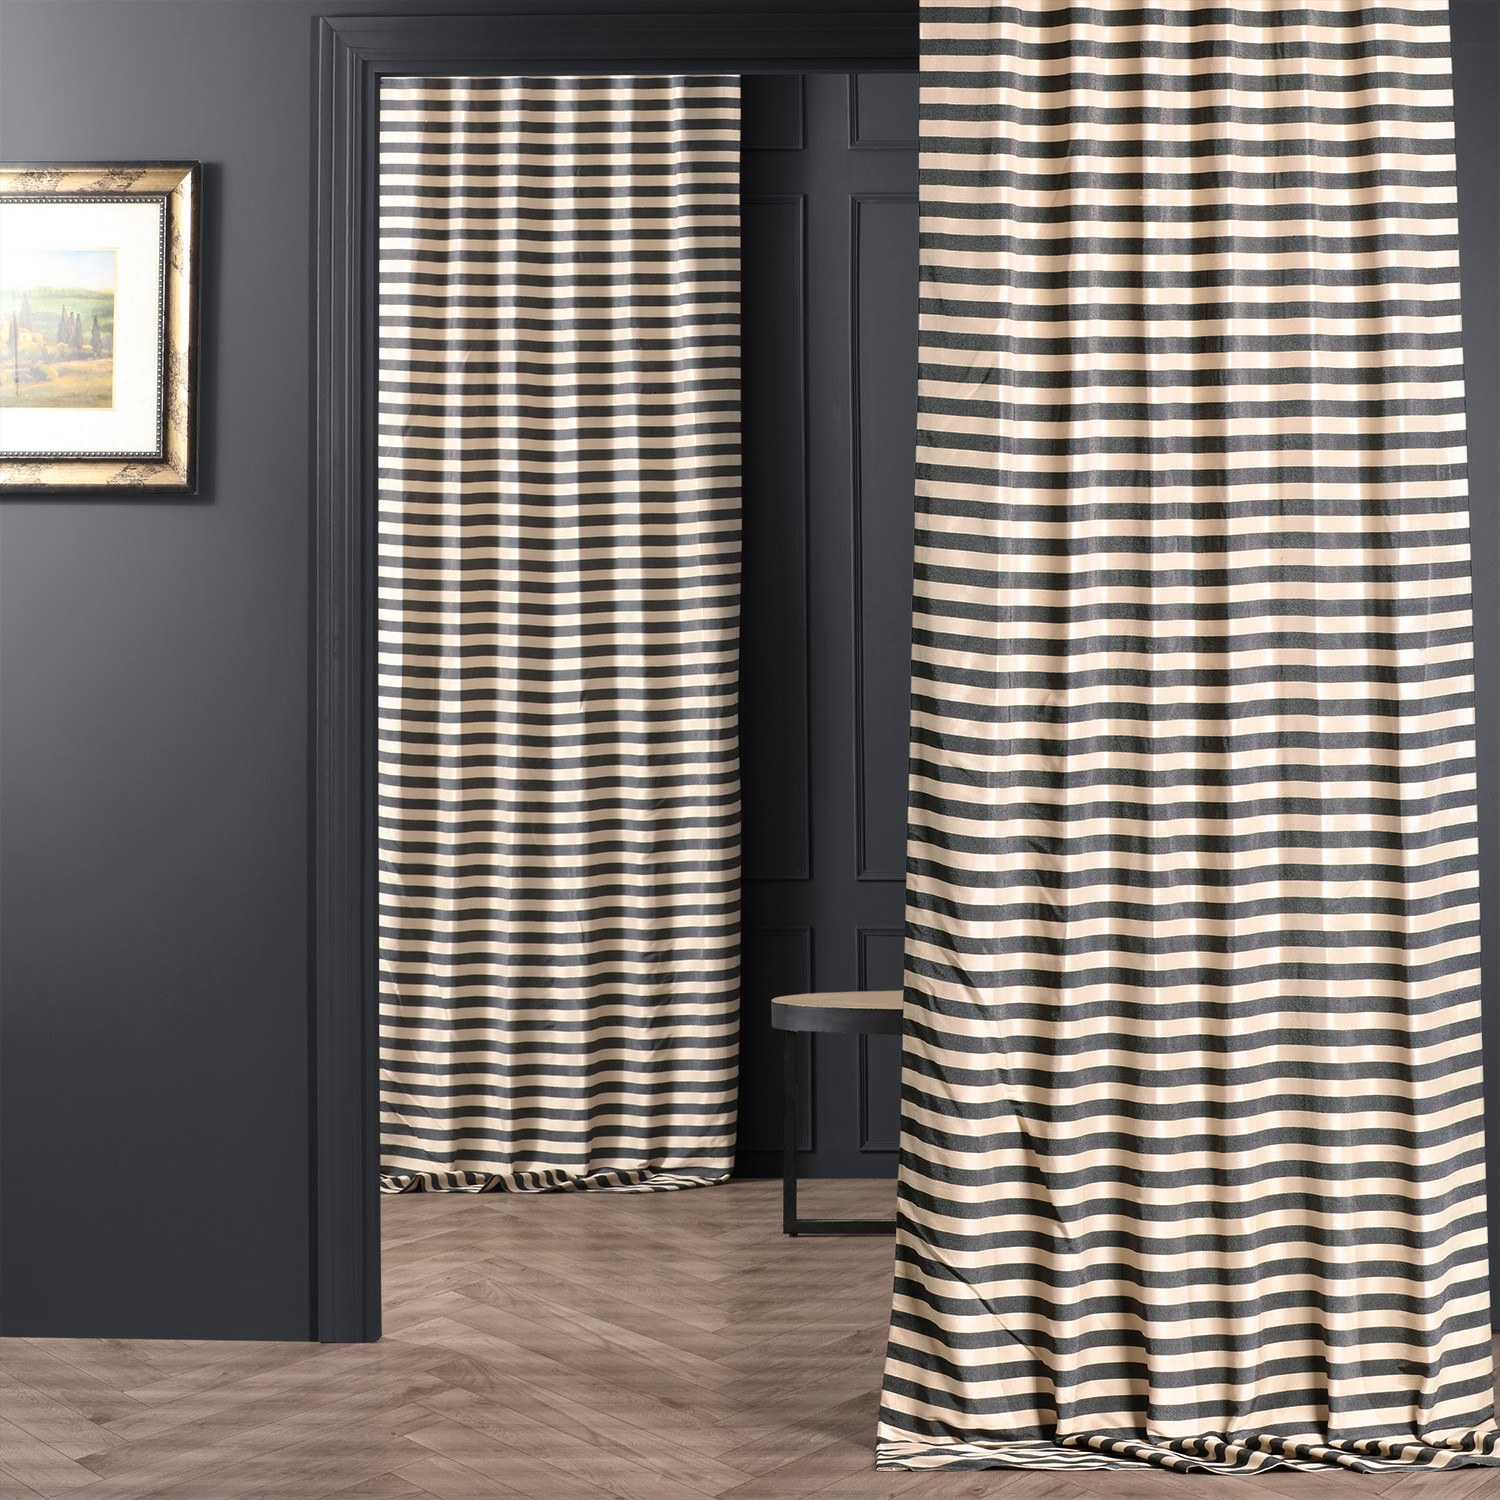 Black & Cream Hand Weaved Cotton Curtain